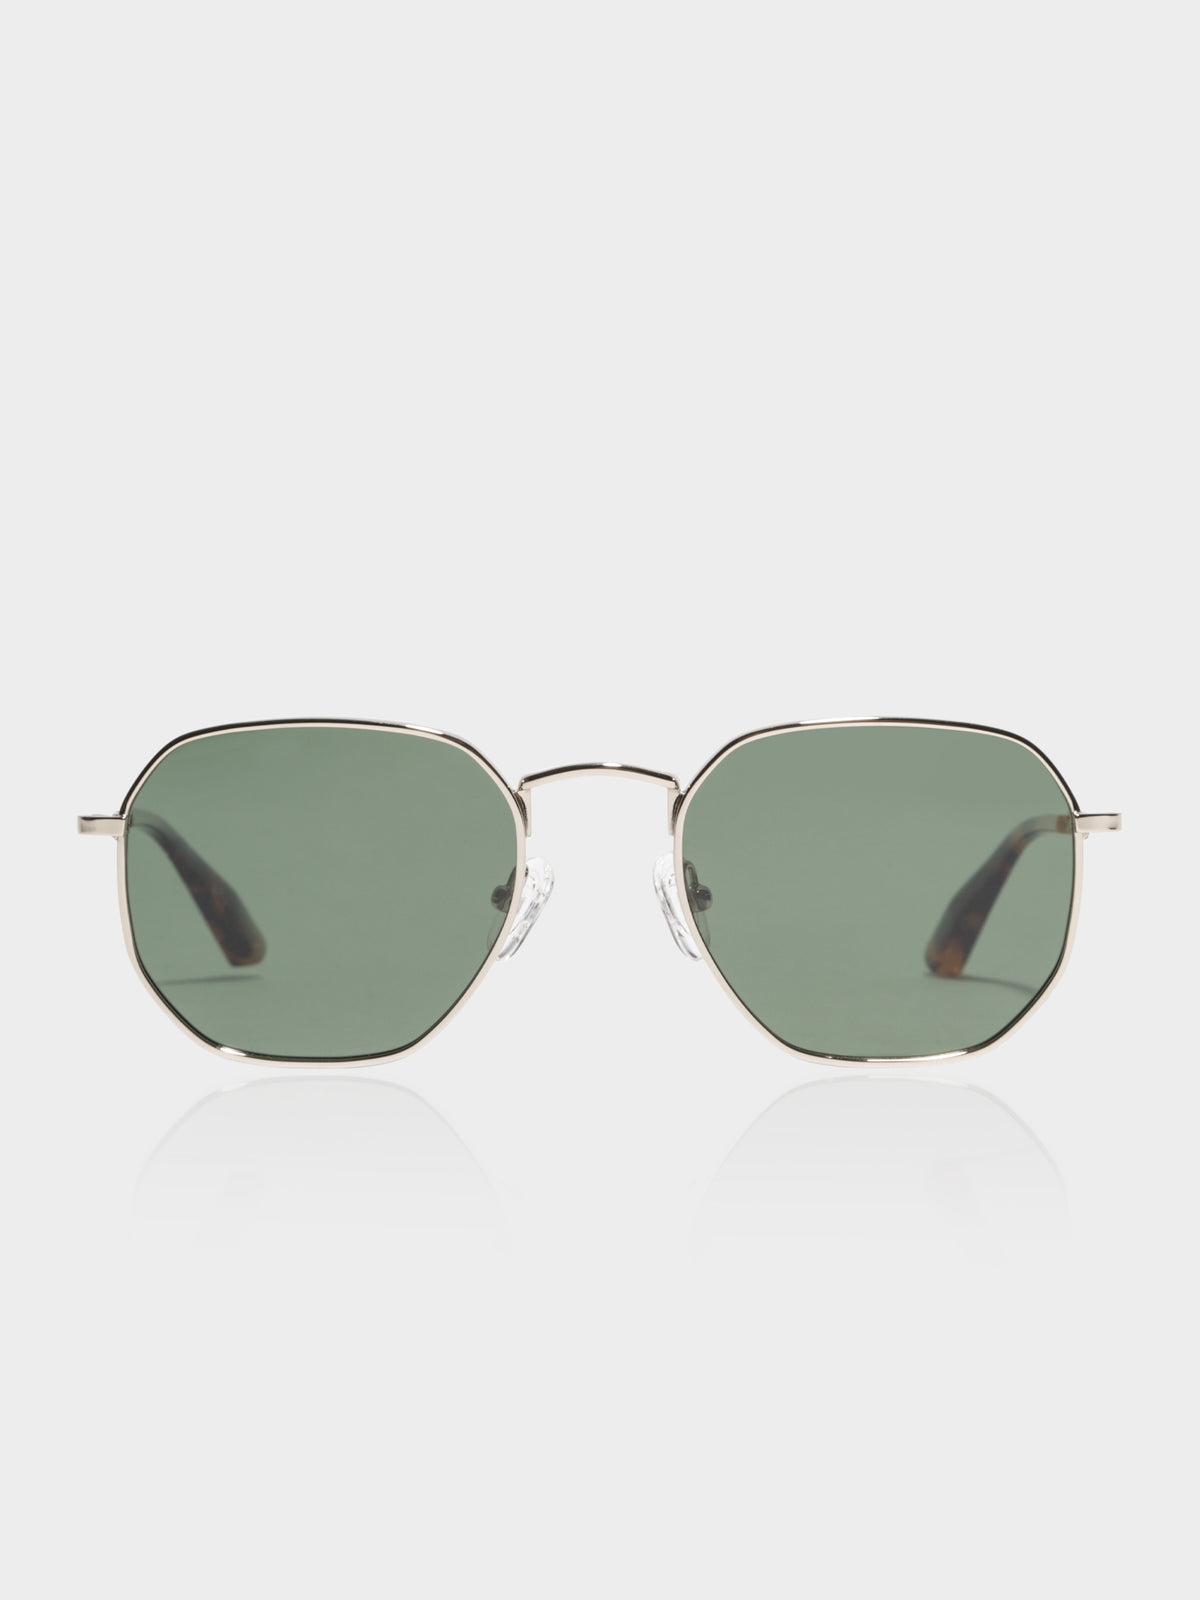 DXB Polarised Sunglasses in Polished Gold & Dark Green